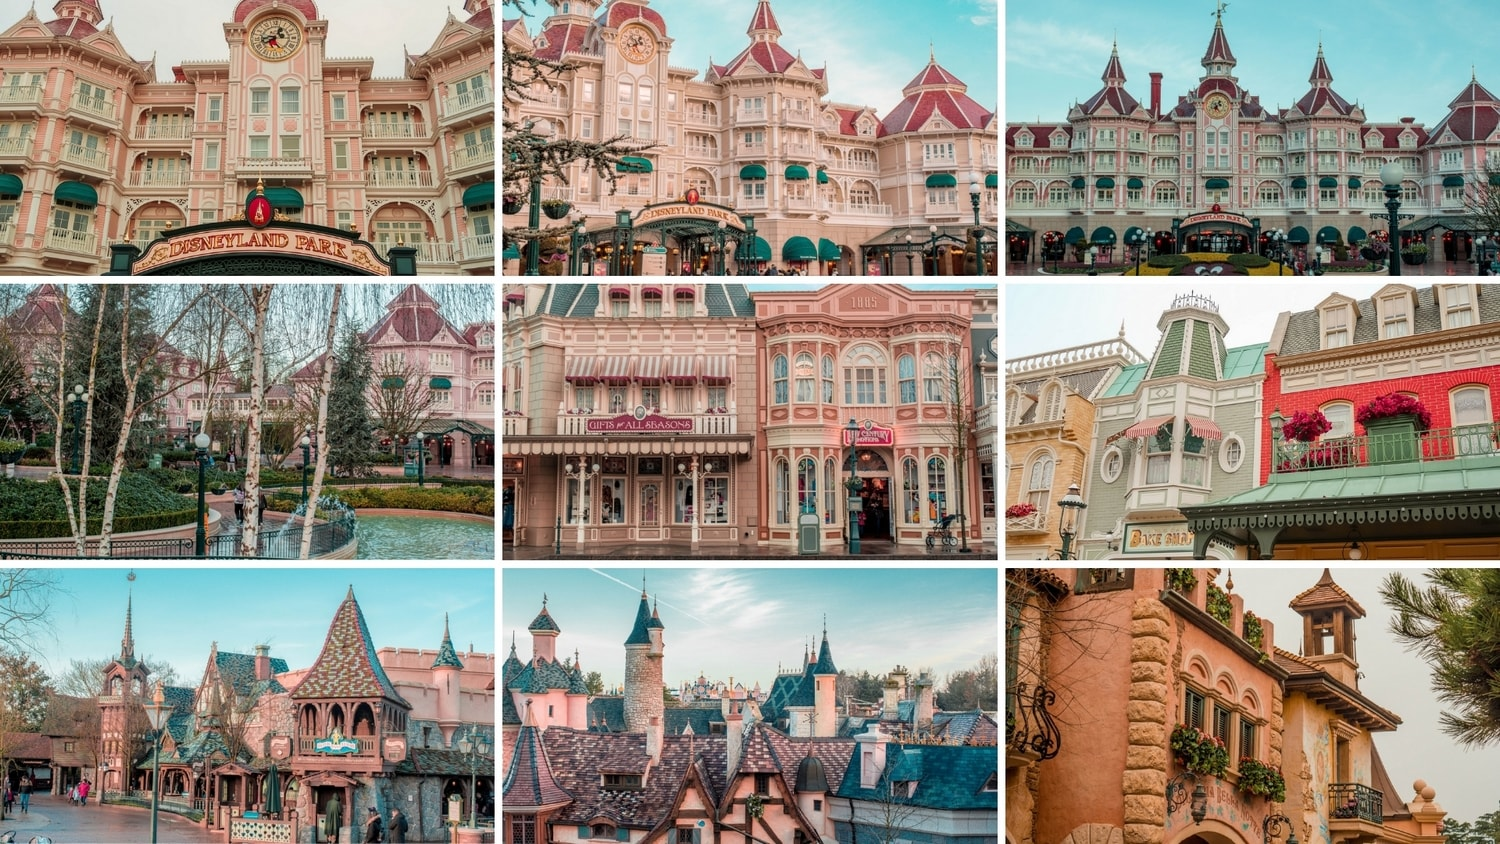 City Guide 4 jours à Disneyland Paris - happinesscoco.com